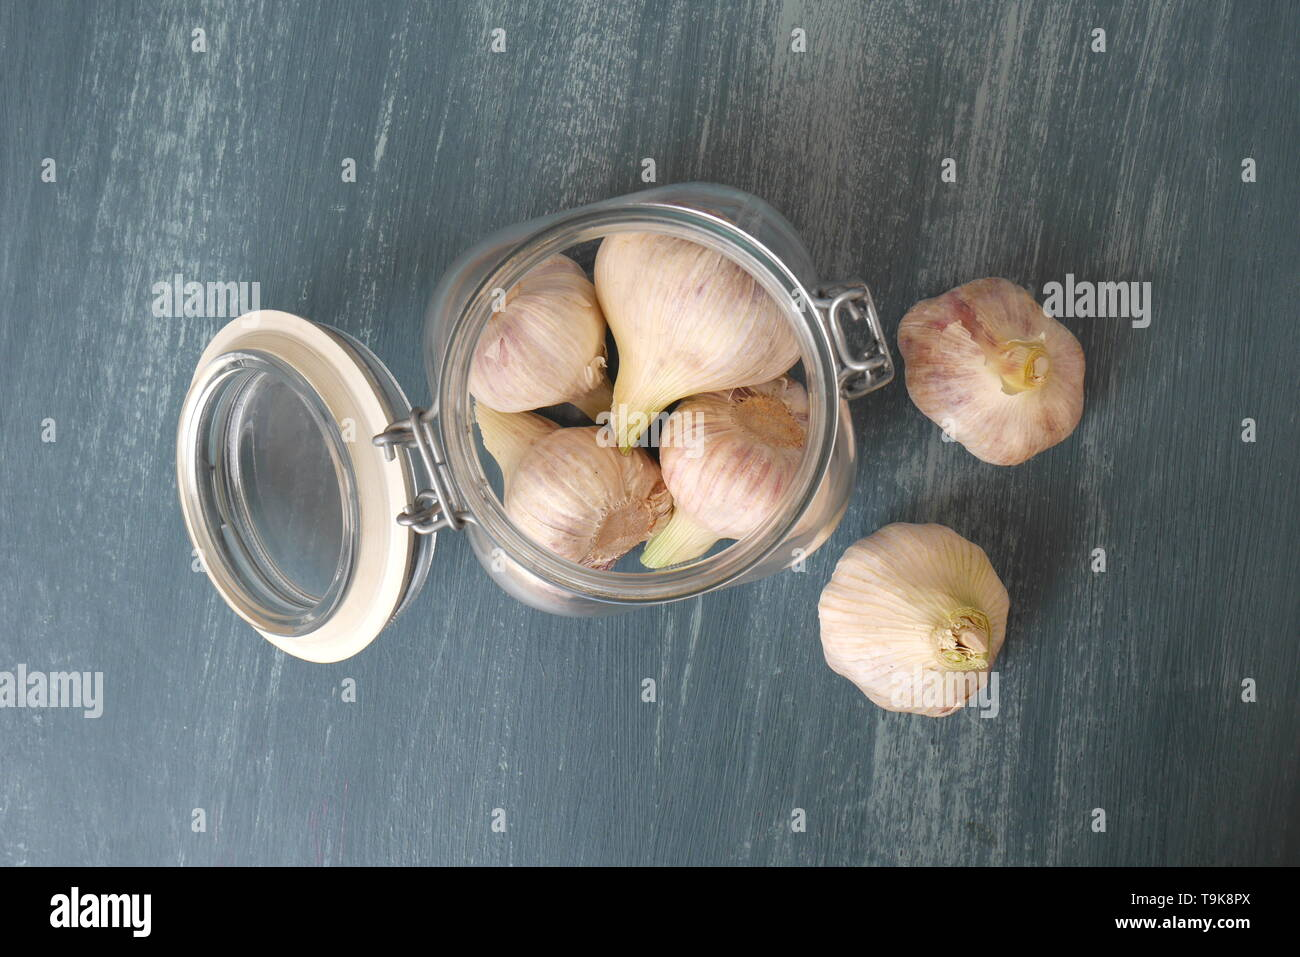 Heads of garlic in a kilner jar on a blue distressed wood kitchen table. - Stock Image